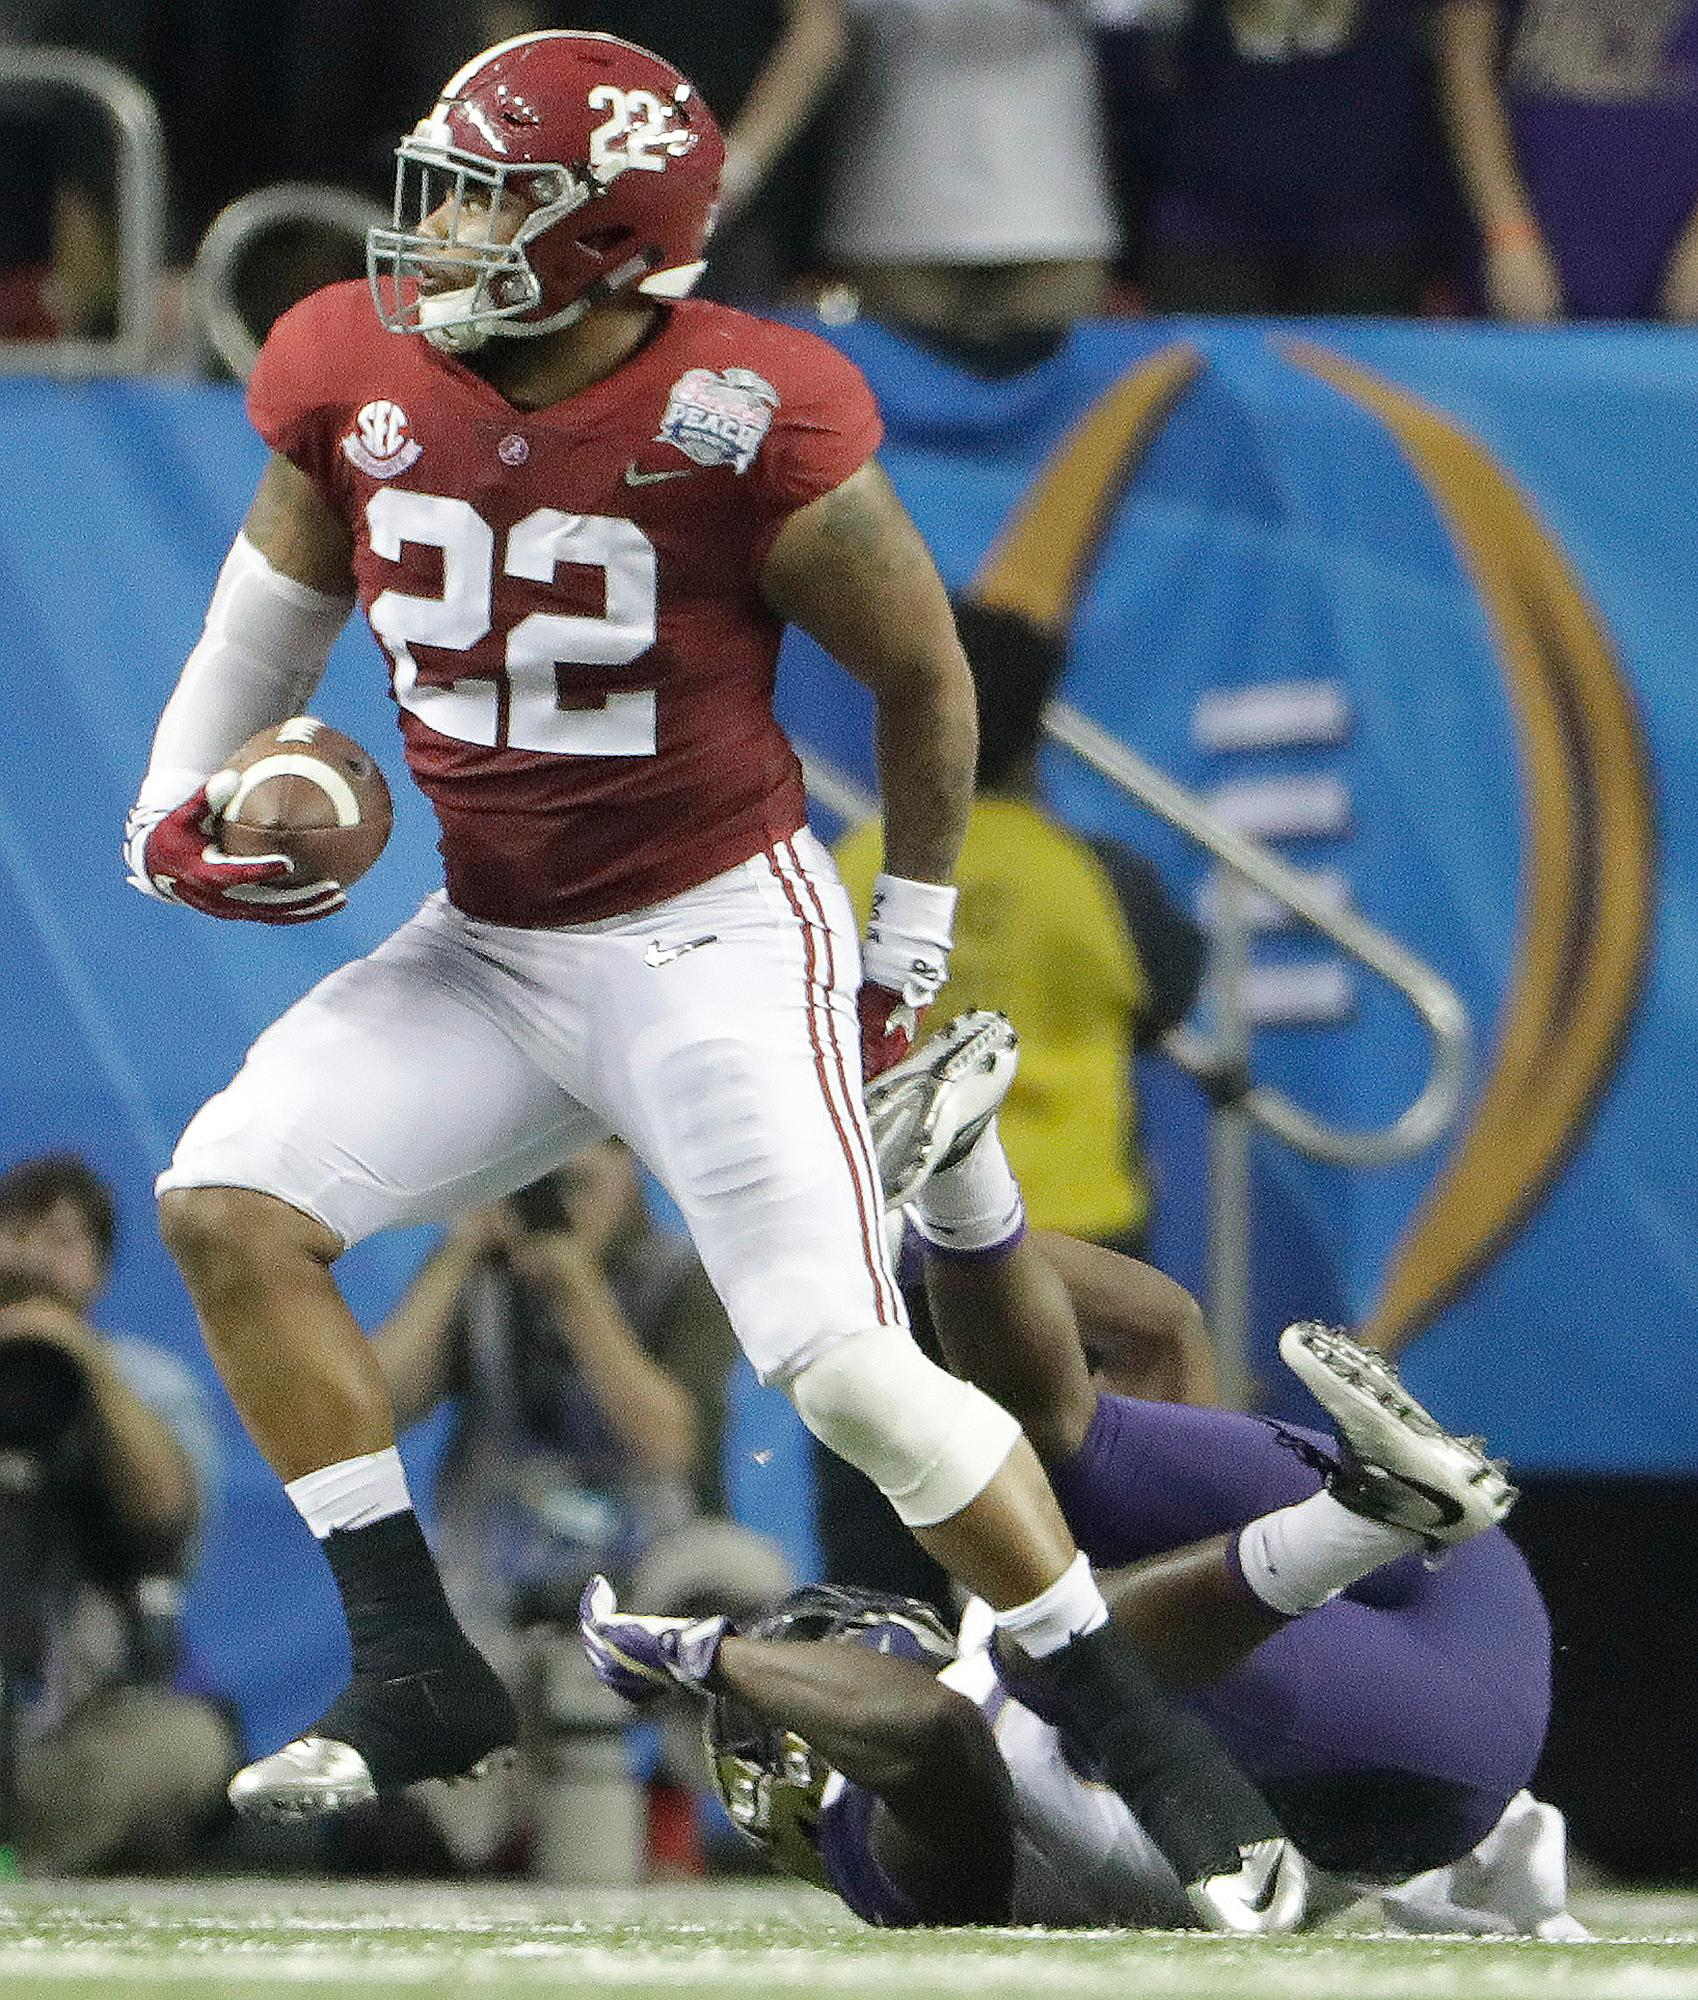 Alabama linebacker Ryan Anderson (22) was selected by the Redskins in the second round with pick no. 49. Anderson picks off a pass intended for Washington running back Lavon Coleman (22) during the first half of the Peach Bowl NCAA college football playoff game, Saturday, Dec. 31, 2016, in Atlanta. (AP File Photo/David Goldman)